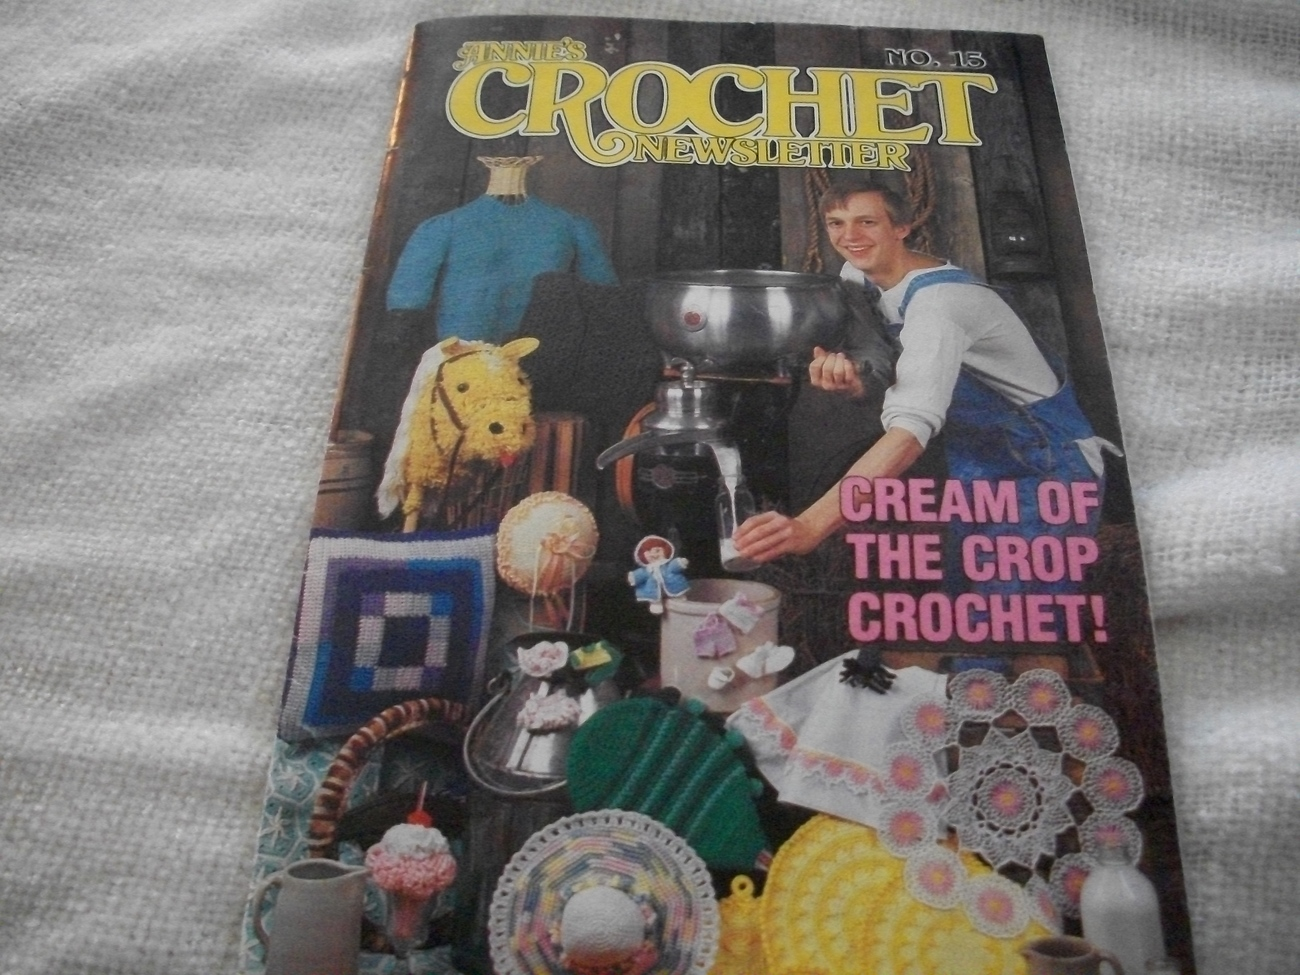 Primary image for Annie's Crochet Newsletter No. 15